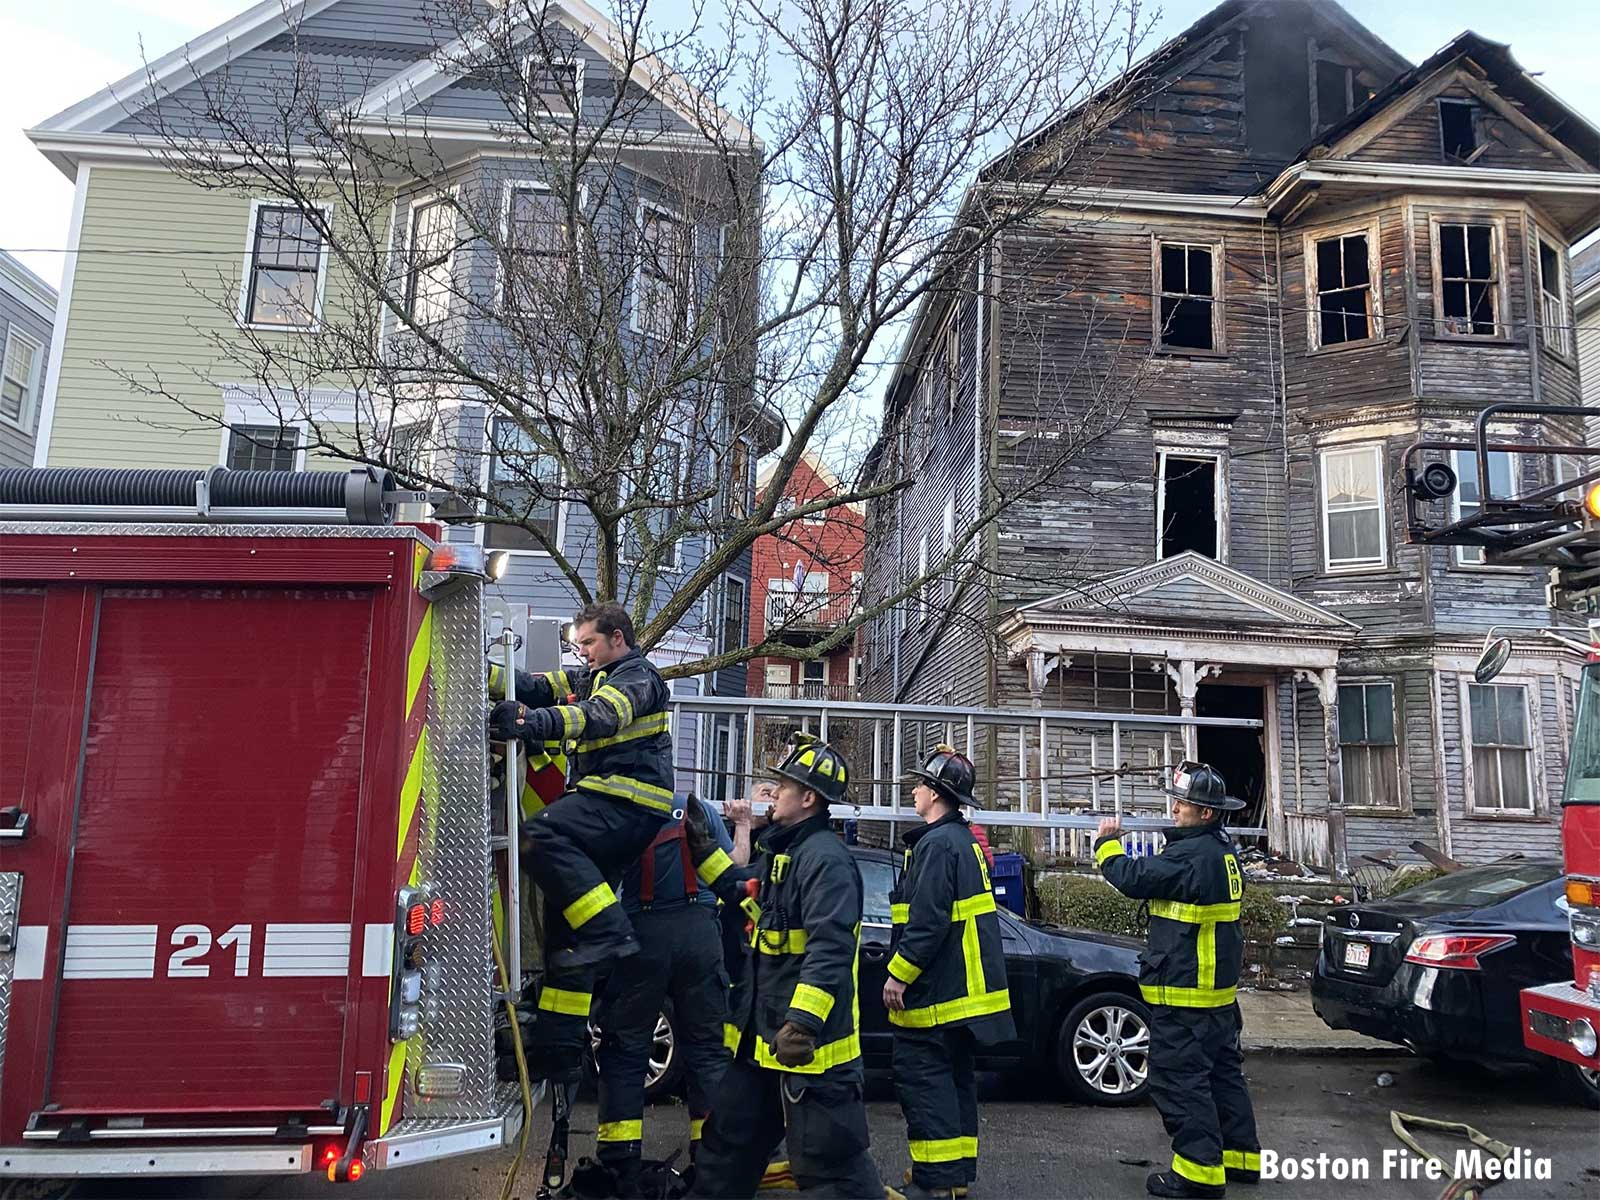 Boston firefighters take up after second major Dorchester fire